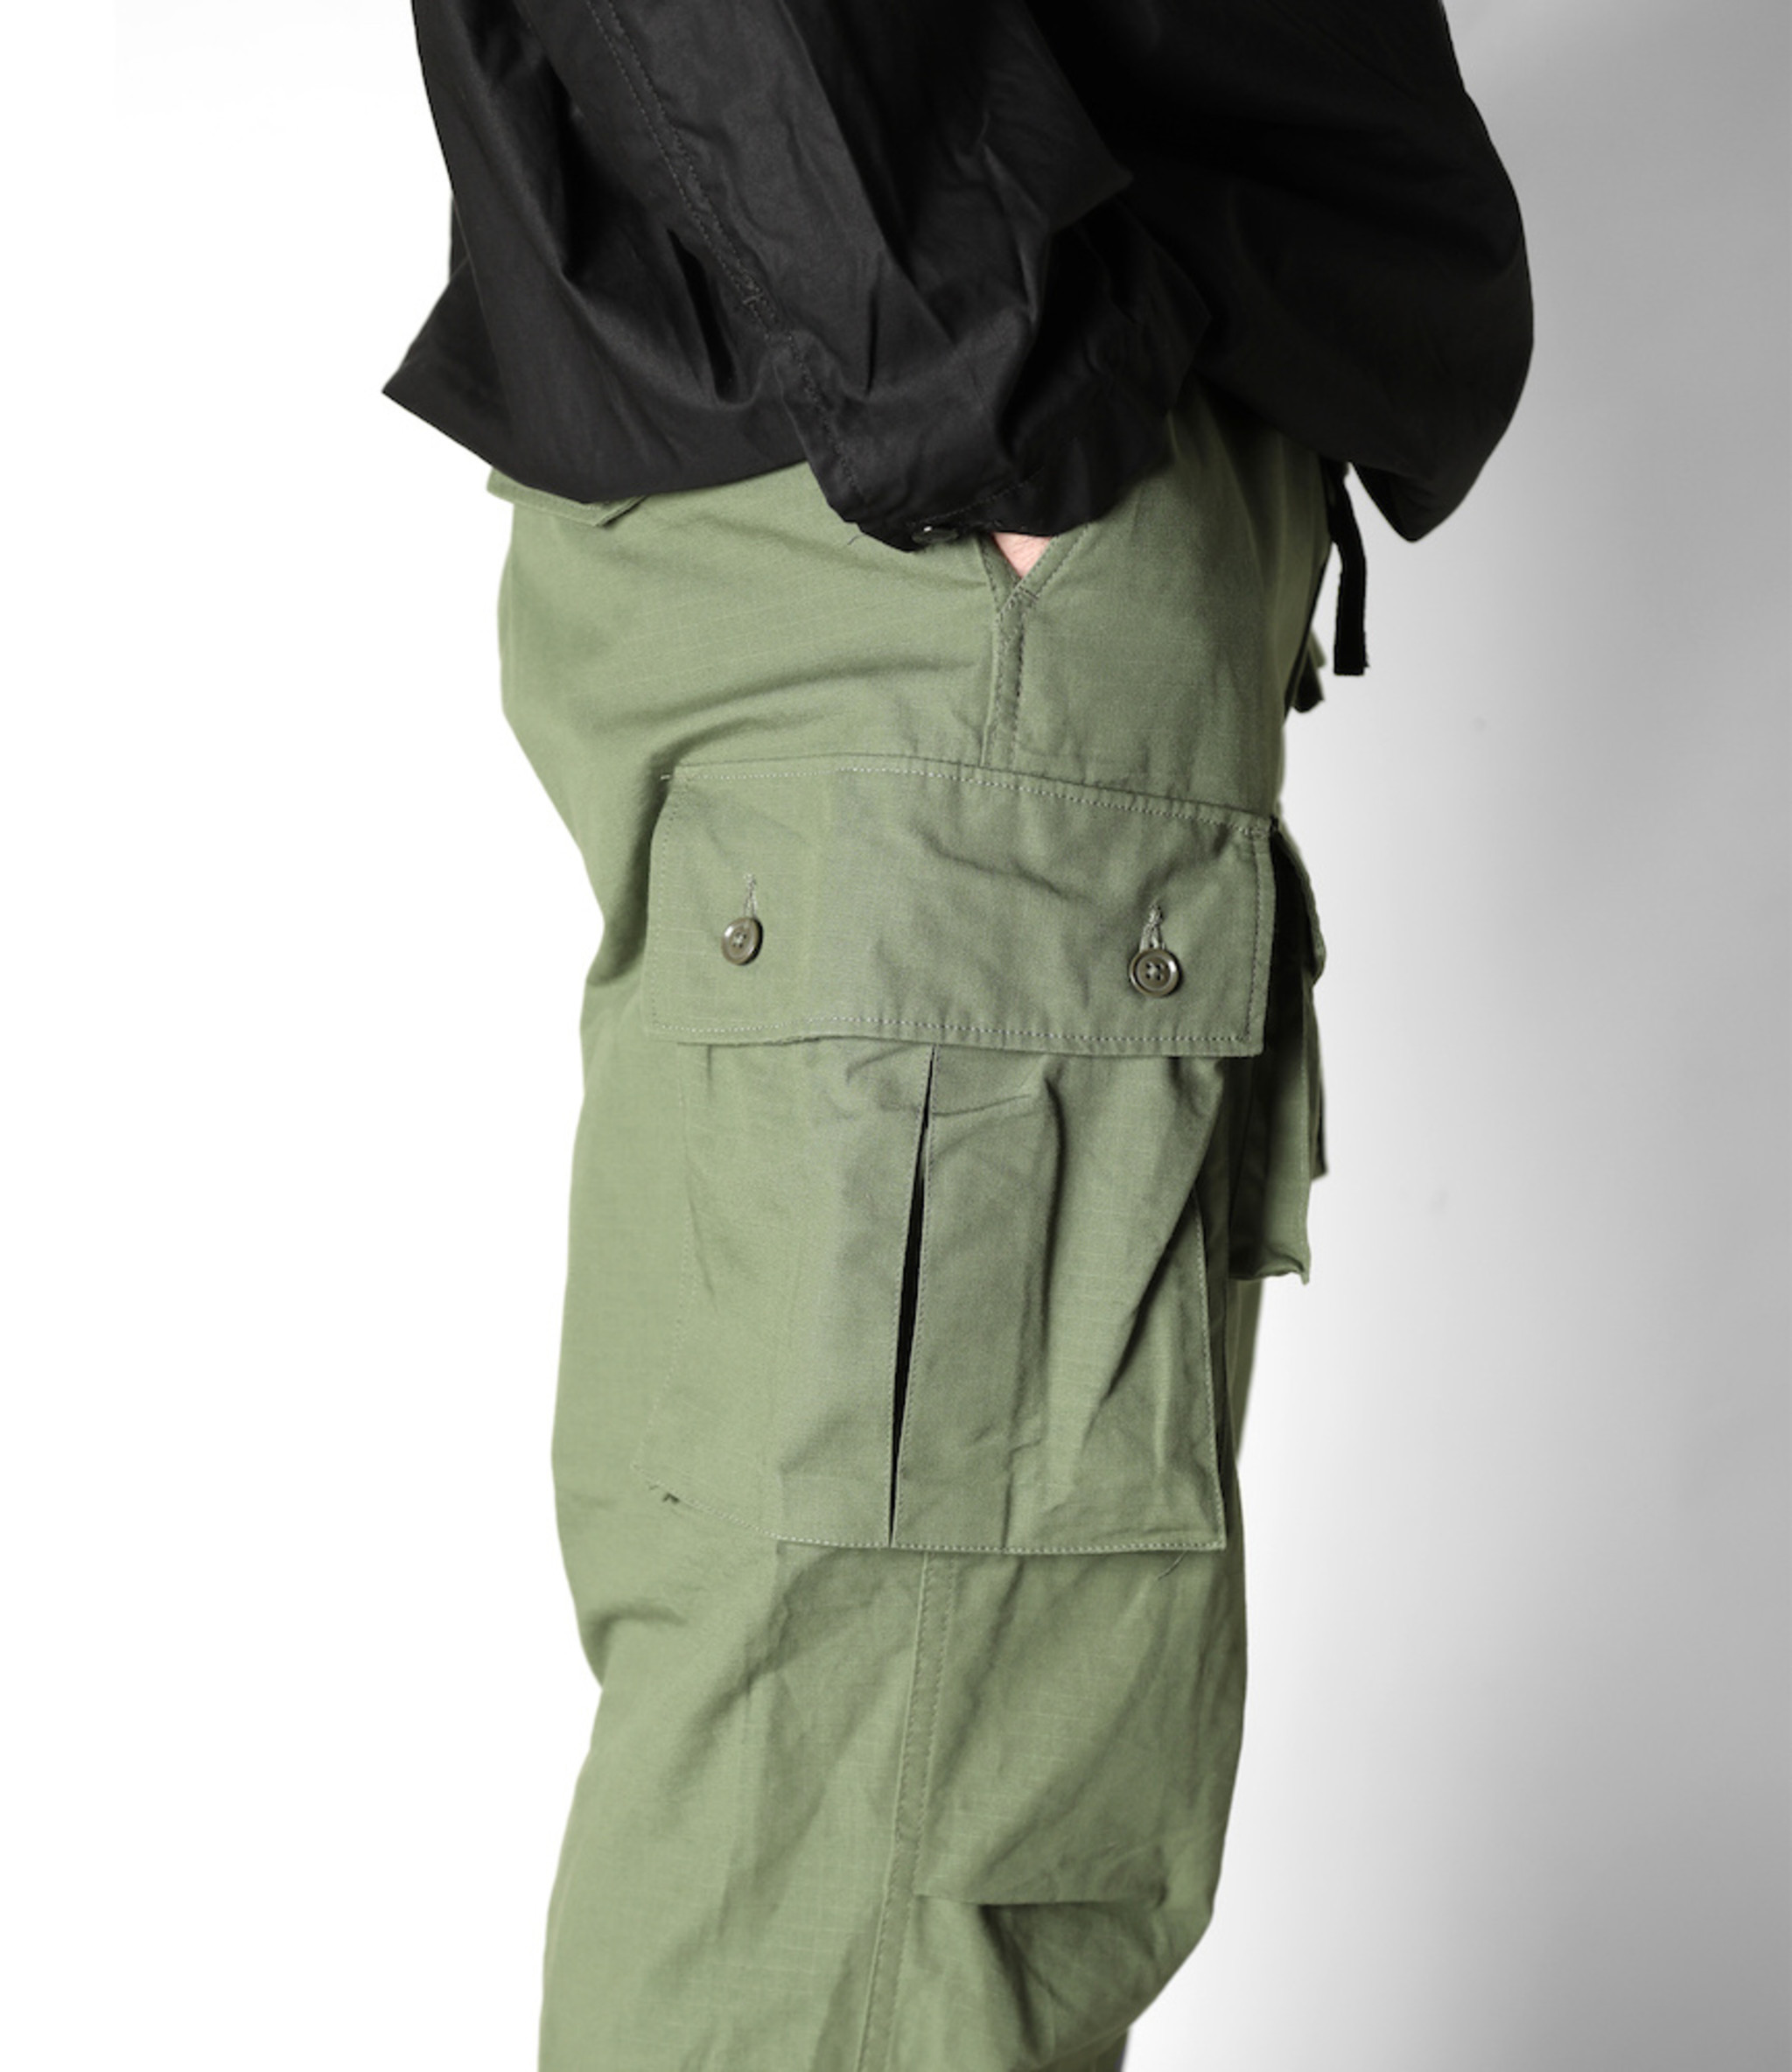 Engineered Garments FA Pant - Olive Cotton Ripstop